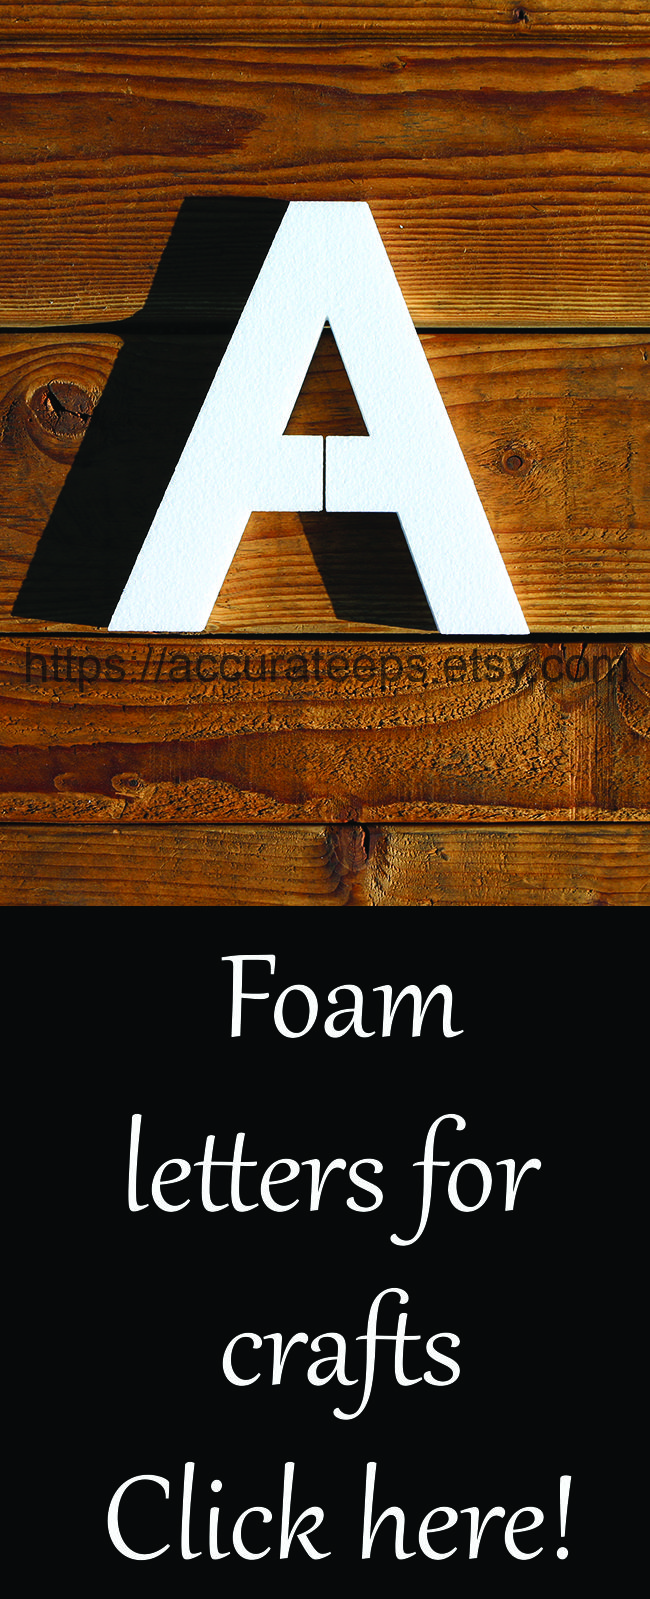 Foam letters for crafts - Find This Pin And More On Diy Craft Foam Letters For